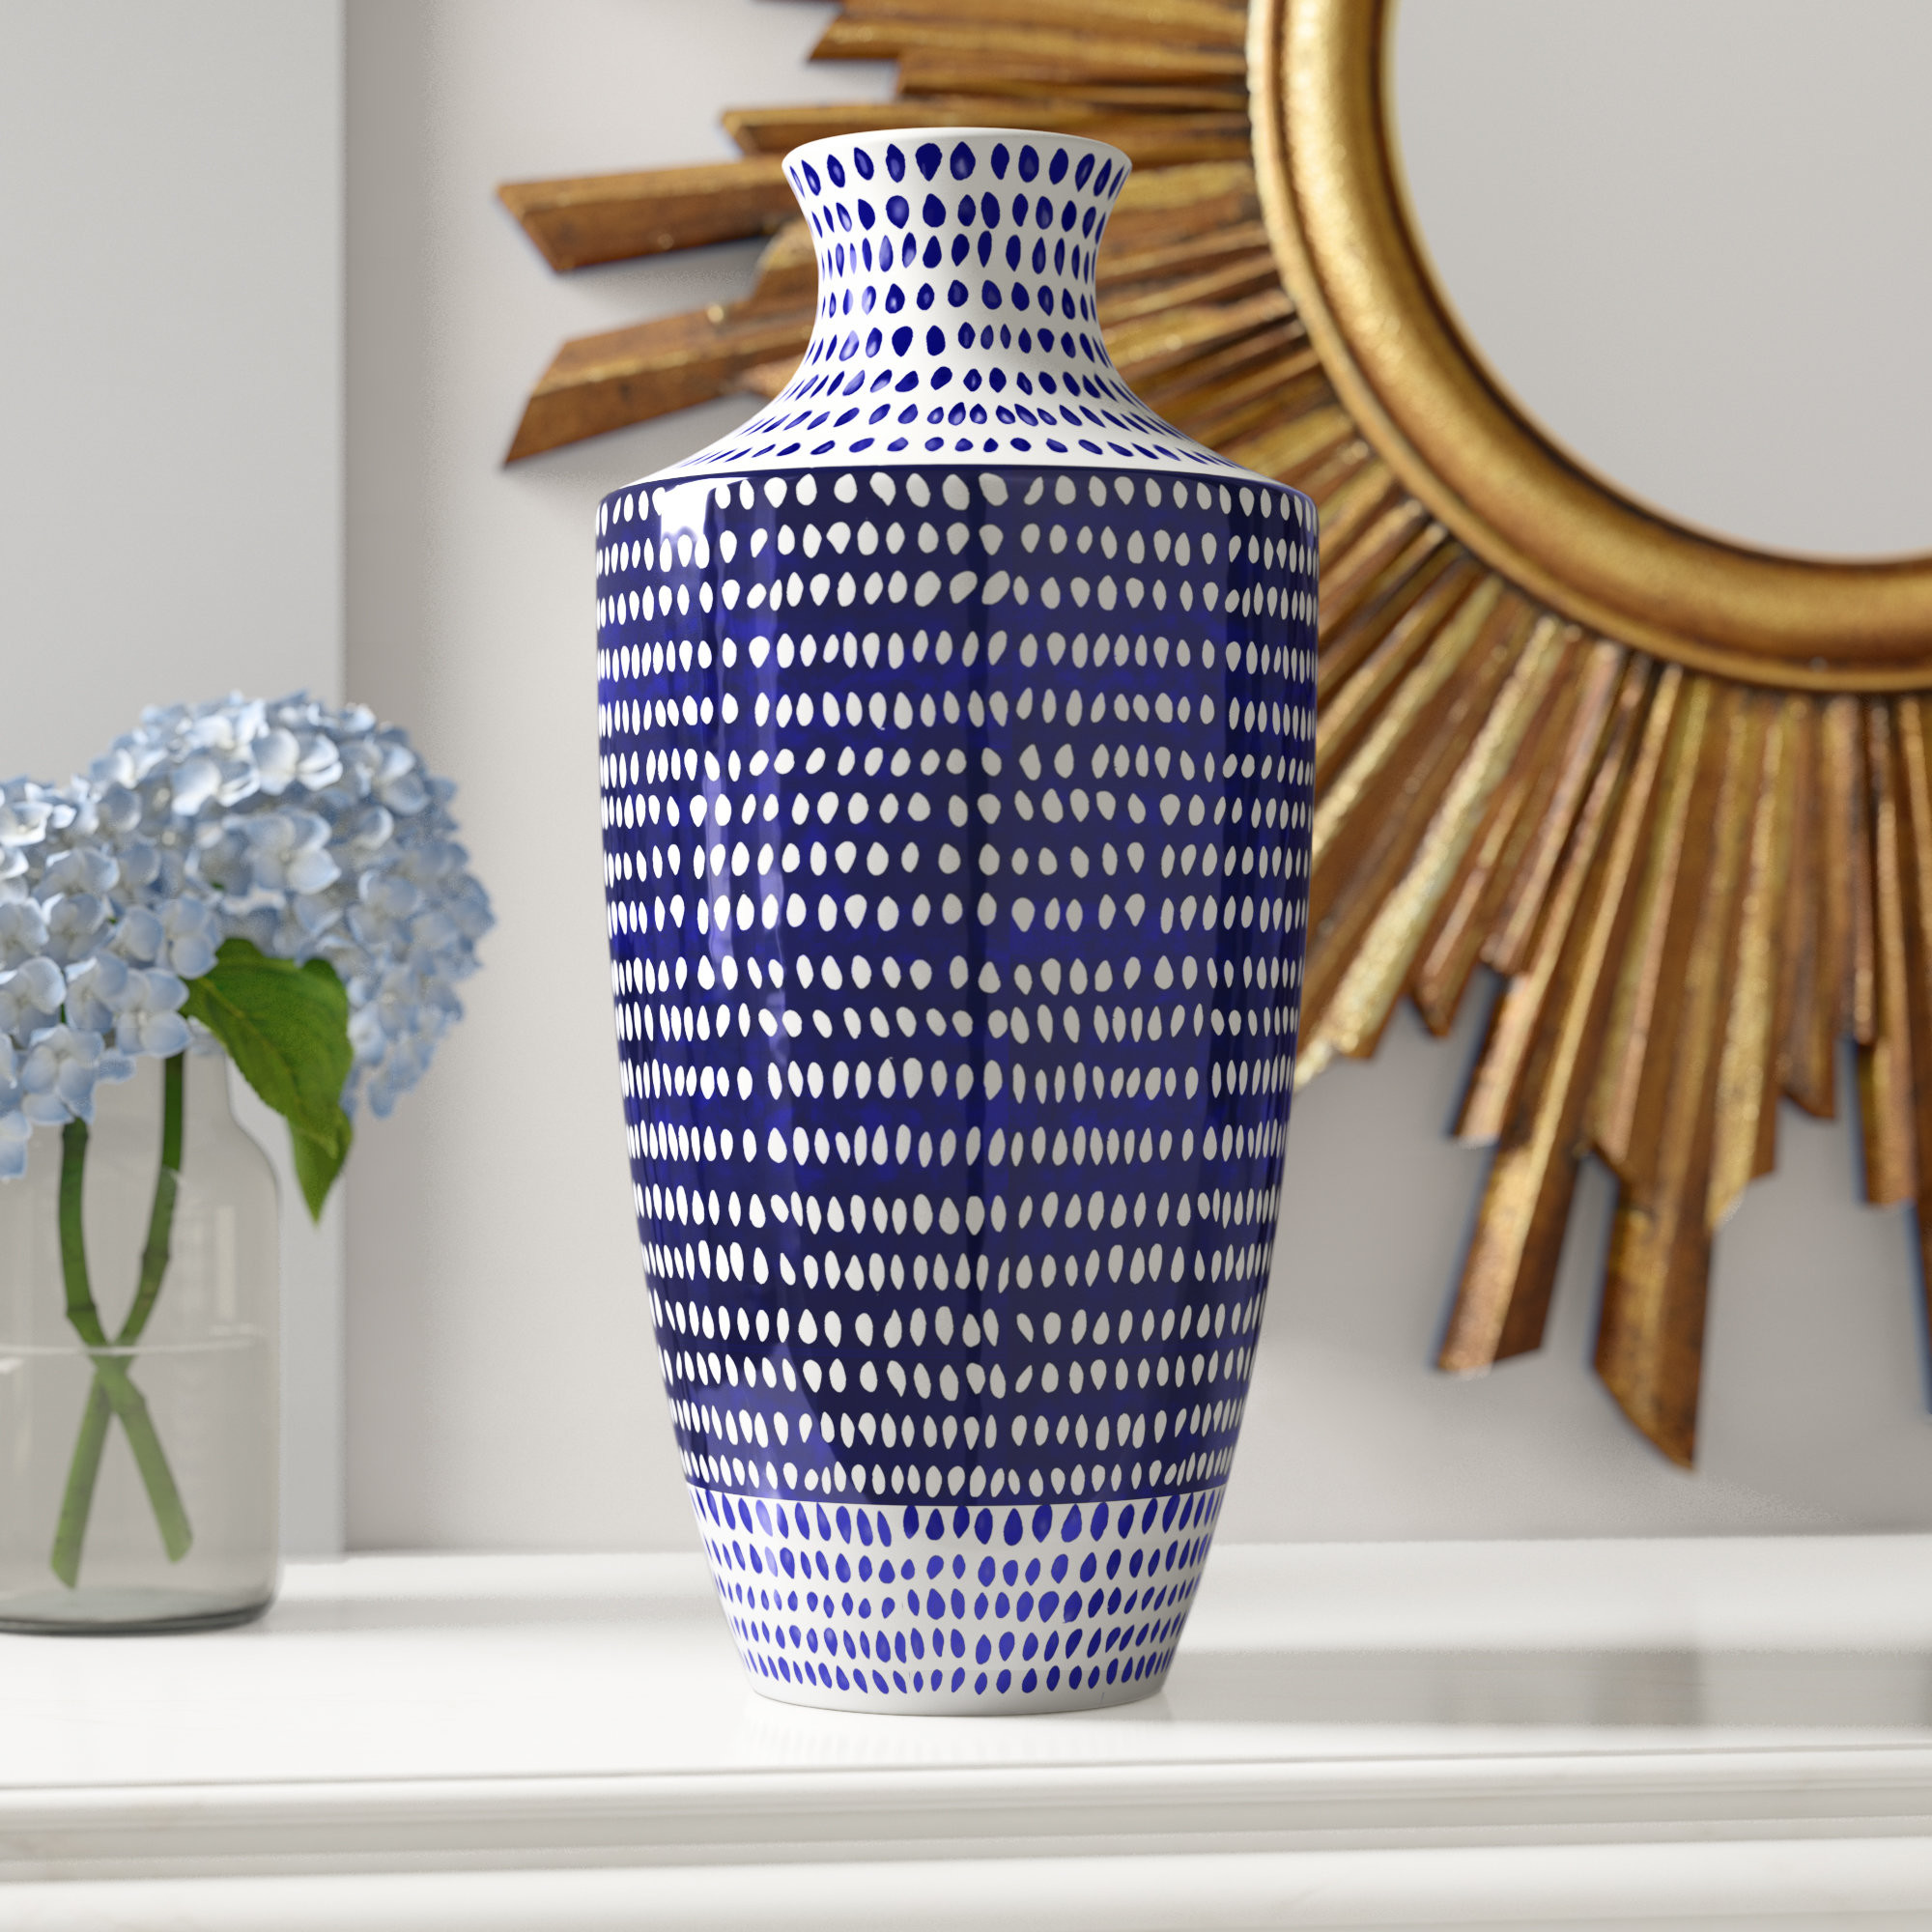 Modern White Ceramic Vase Of World Menagerie Eclectic Ceramic Table Vase Reviews Wayfair with Regard to Eclectic Ceramic Table Vase